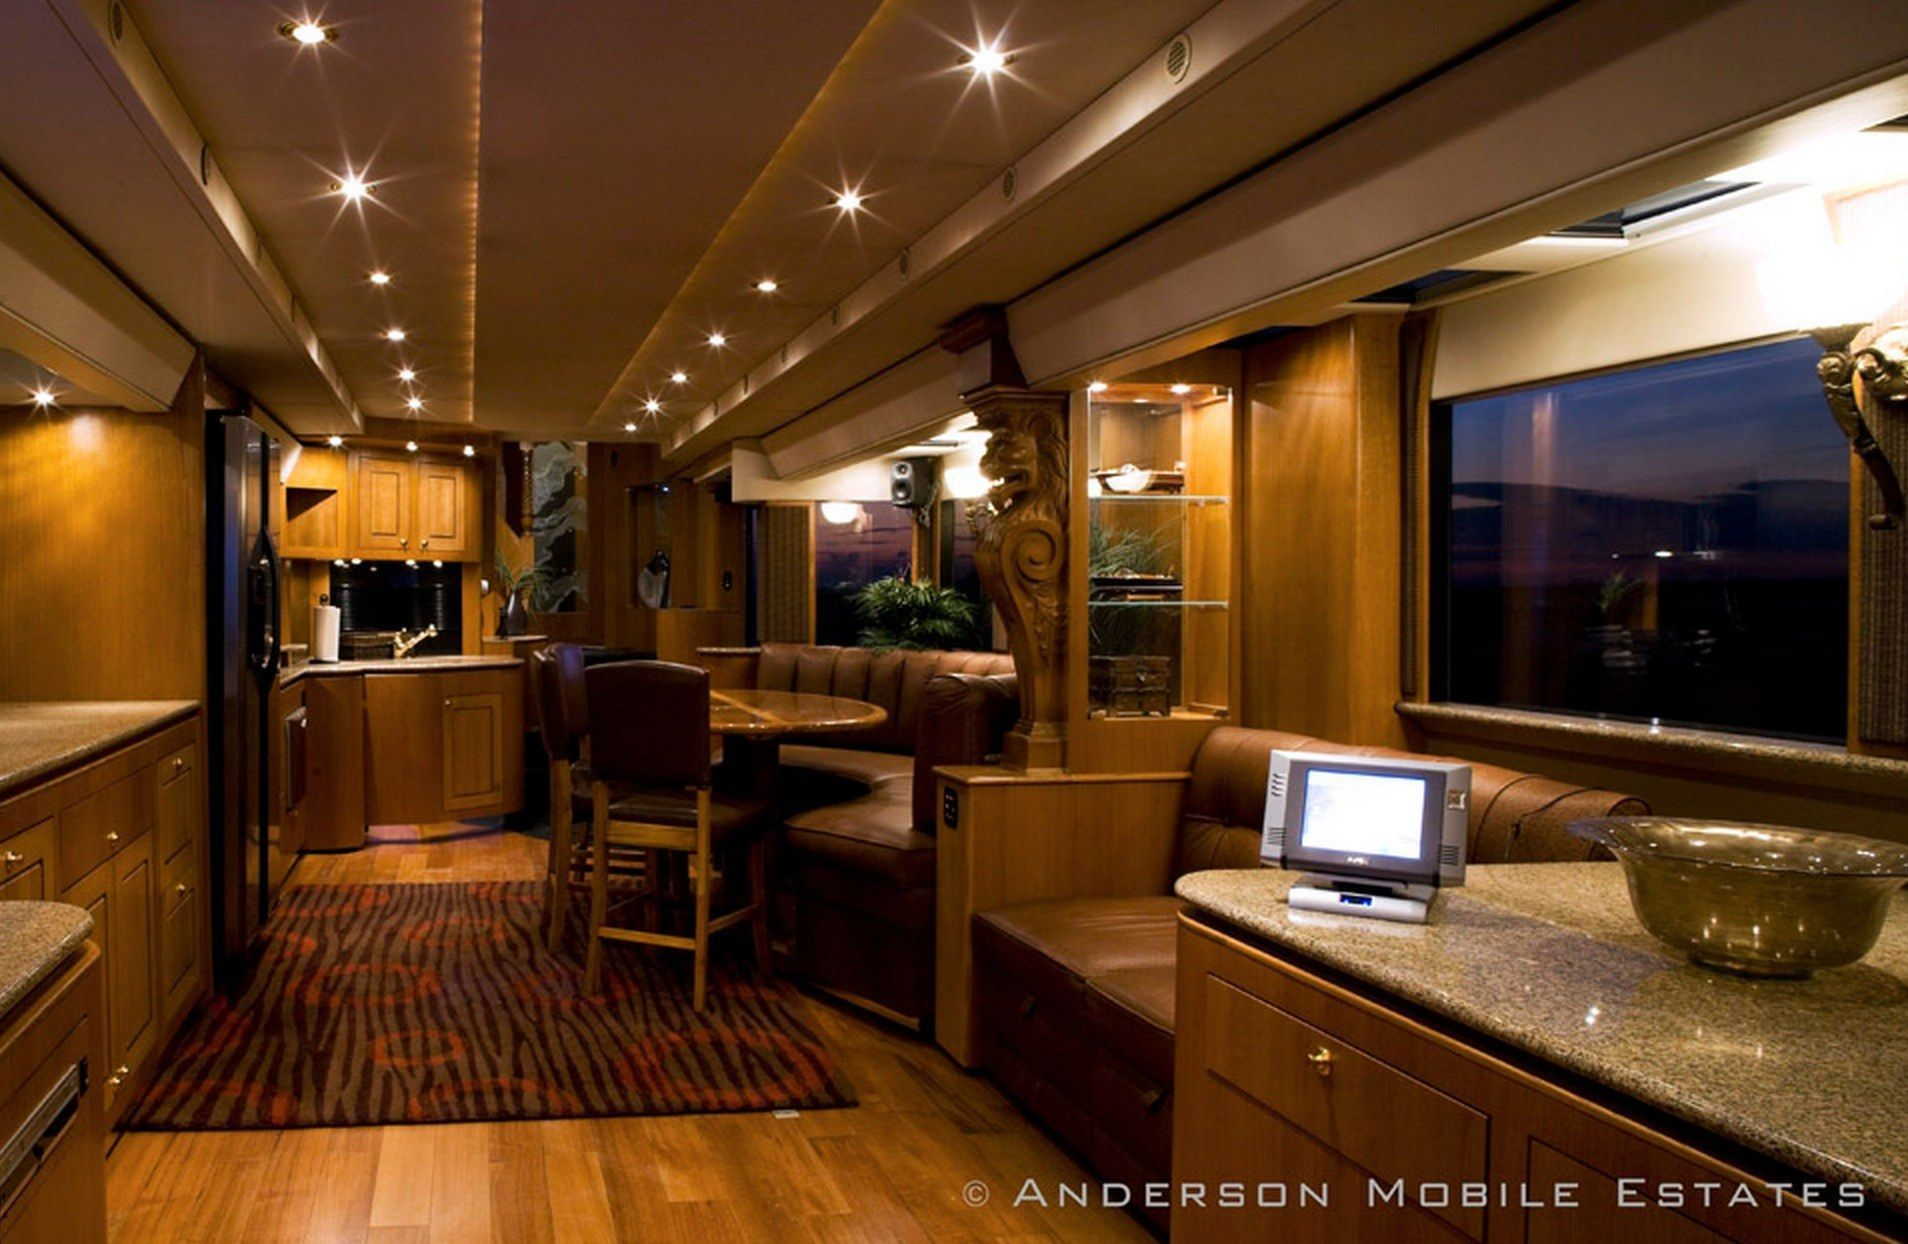 Top 10 Double Decker Bus to Motorhome Conversions - Camping - Top 10